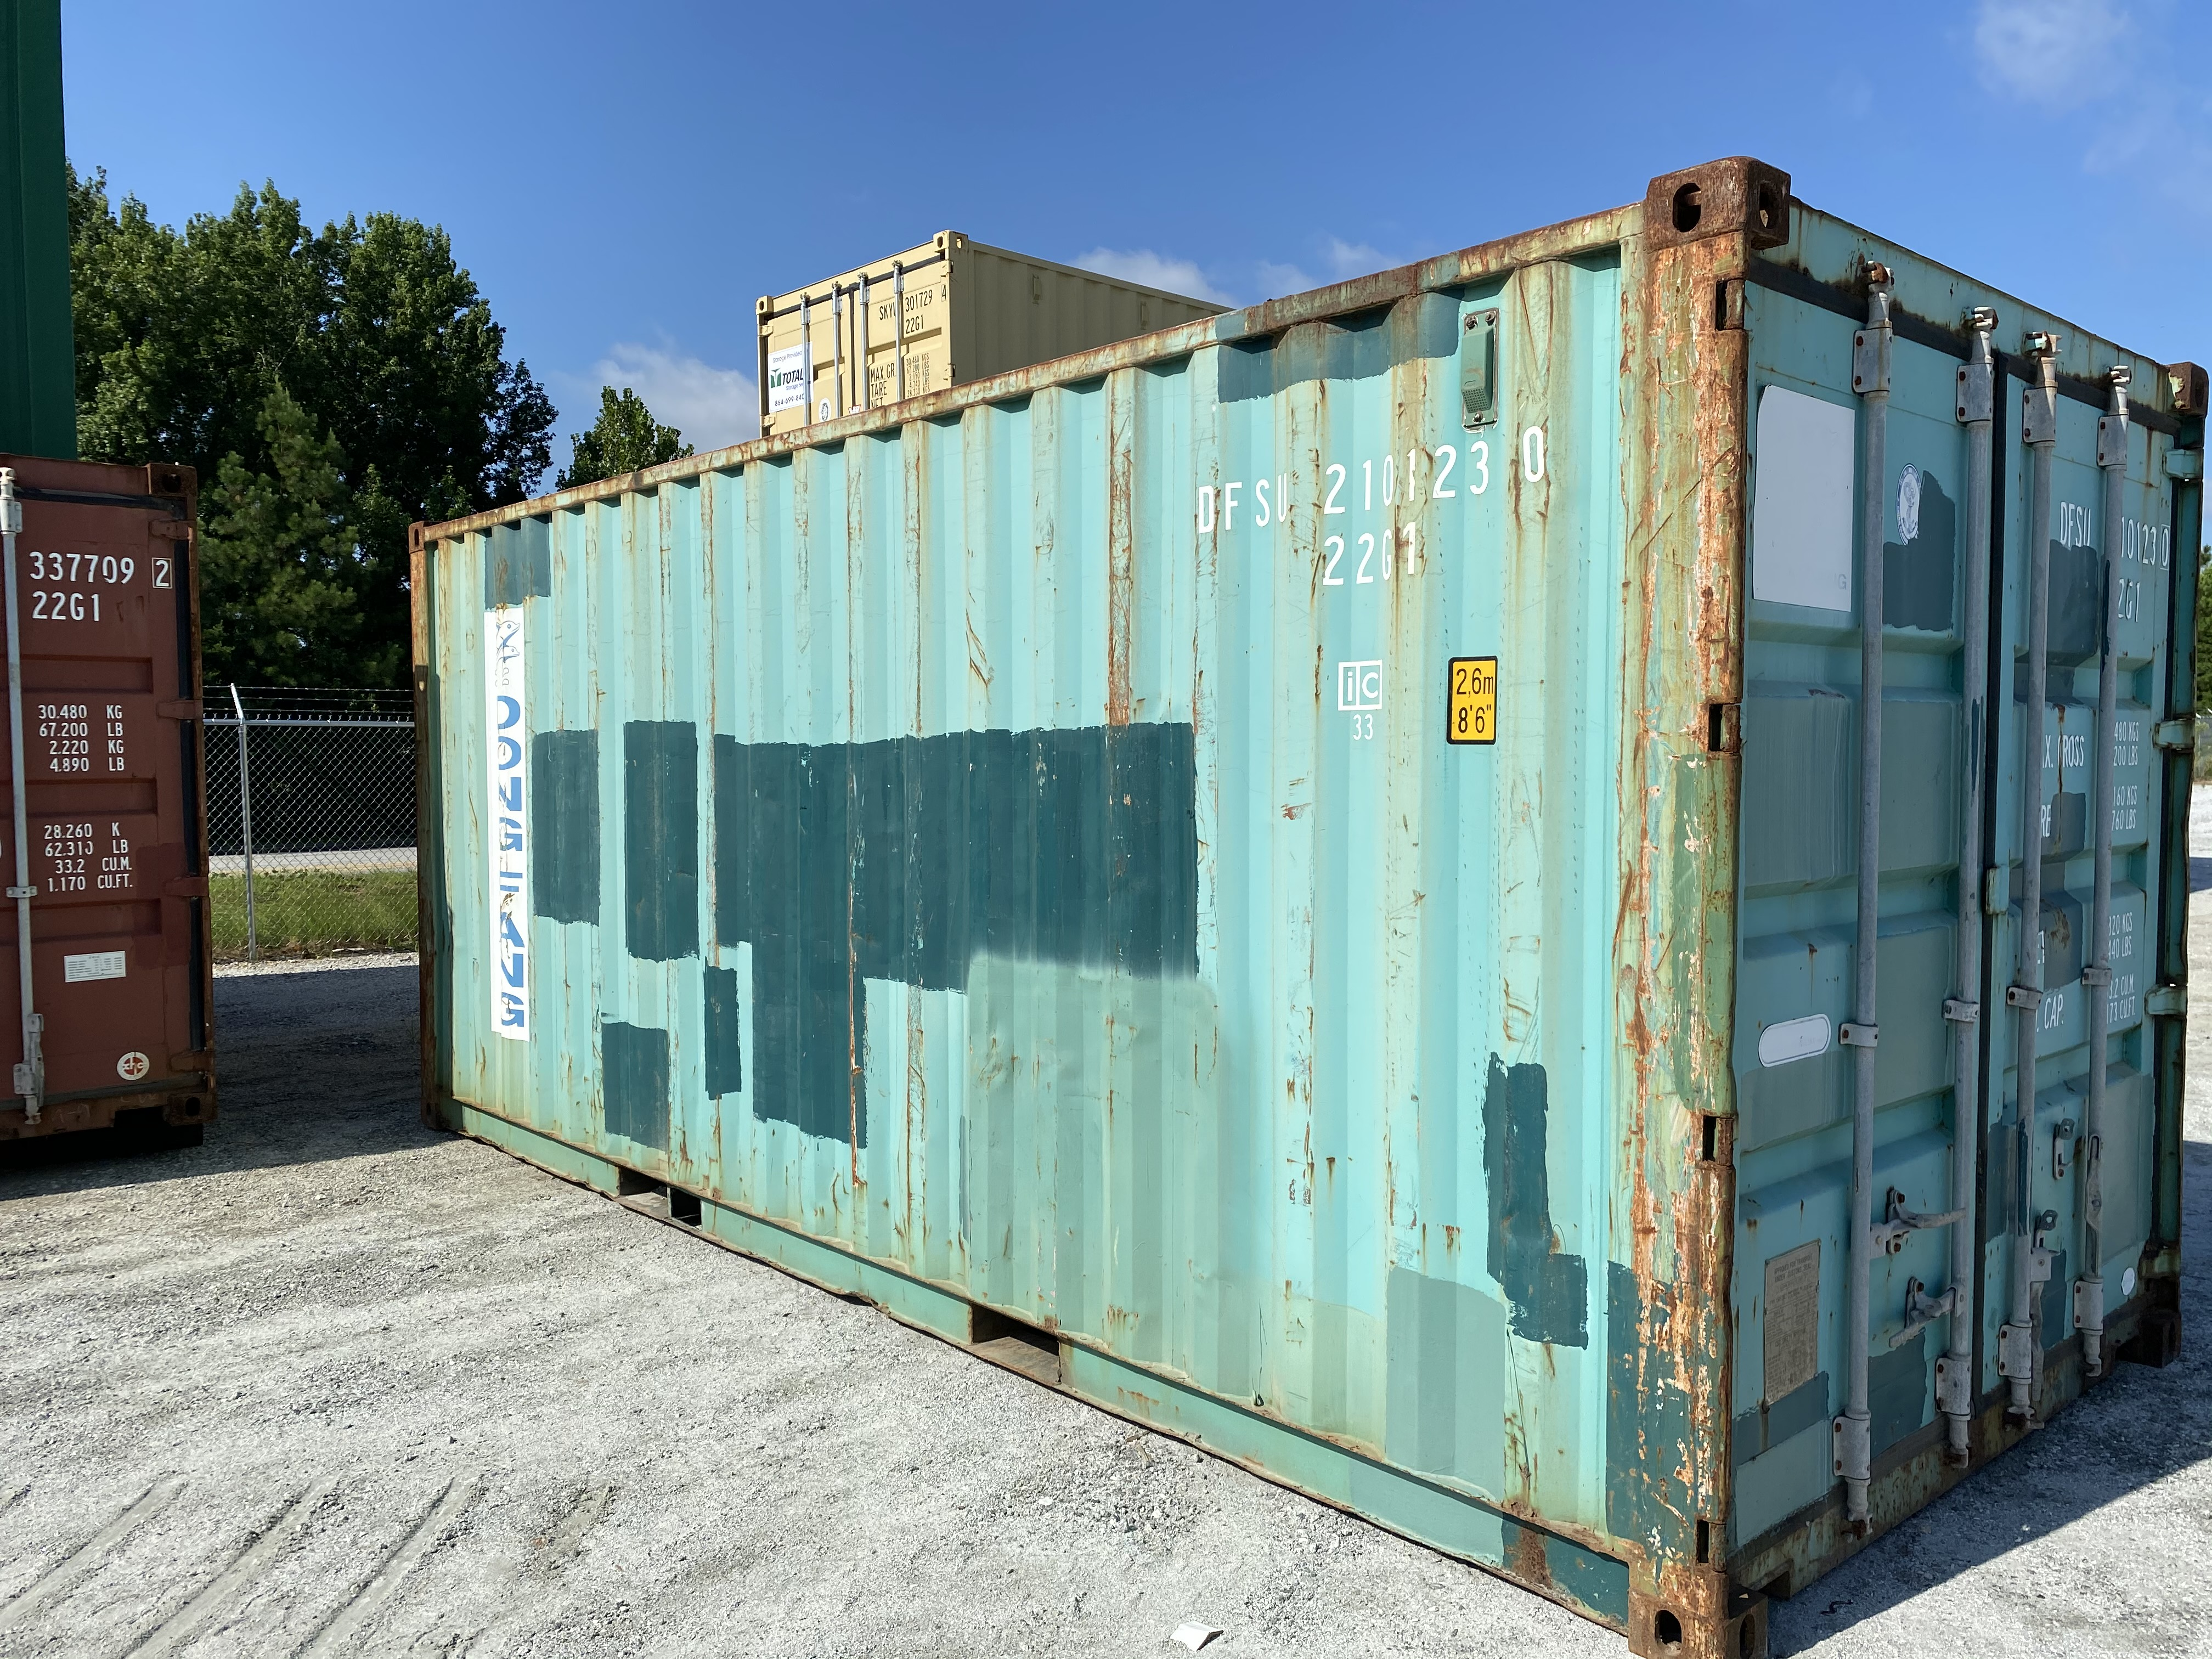 Teal storage container before modification